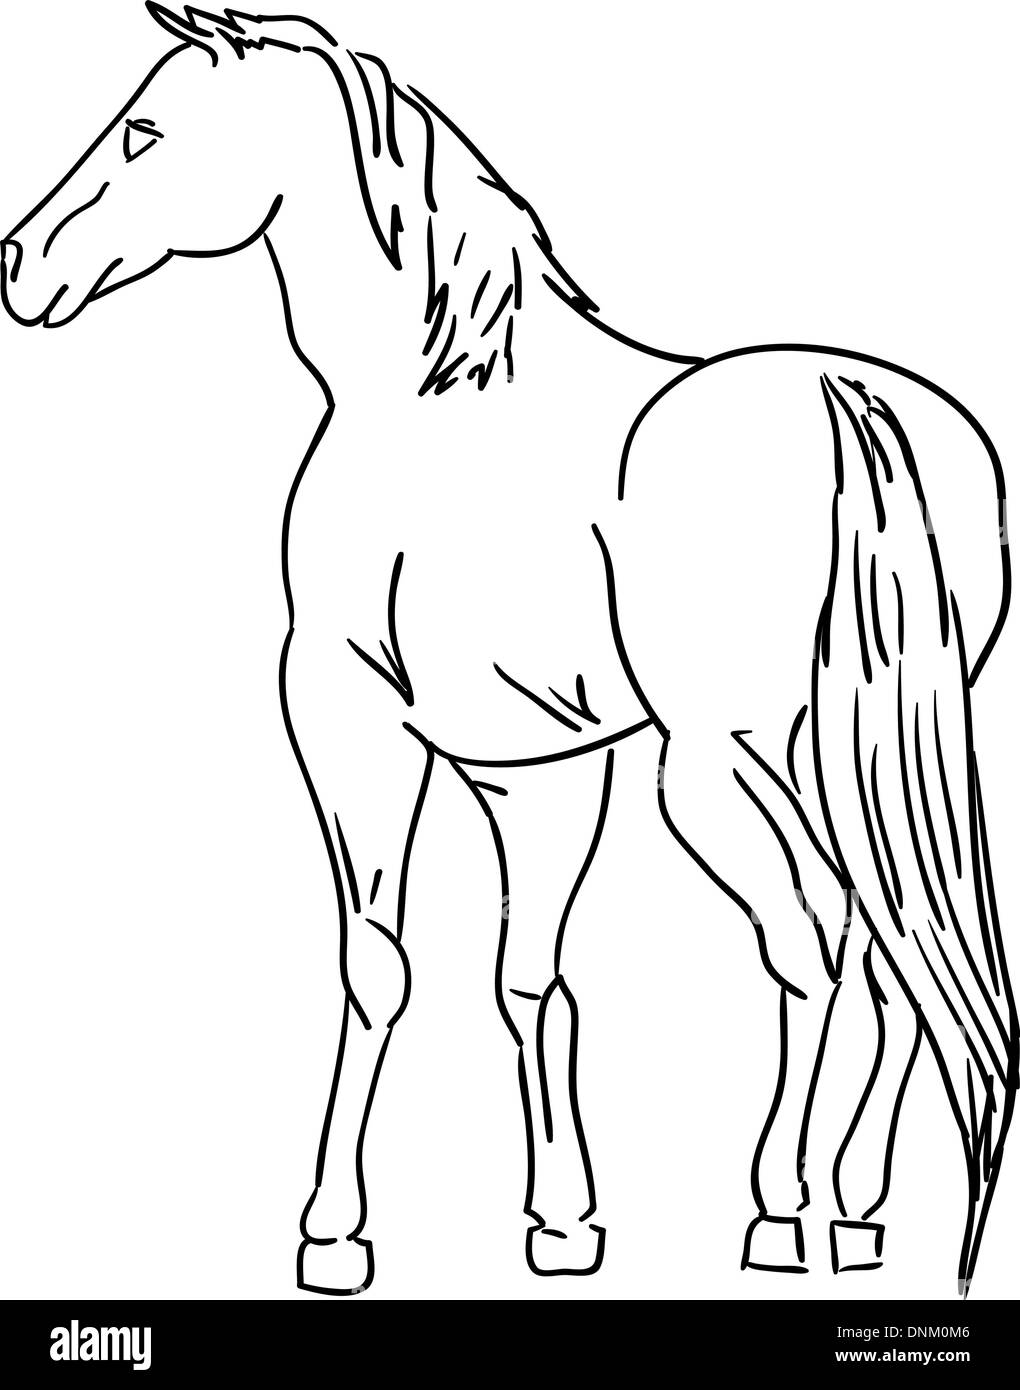 Vector version. Black horse silhouette isolated on white for design. - Stock Image